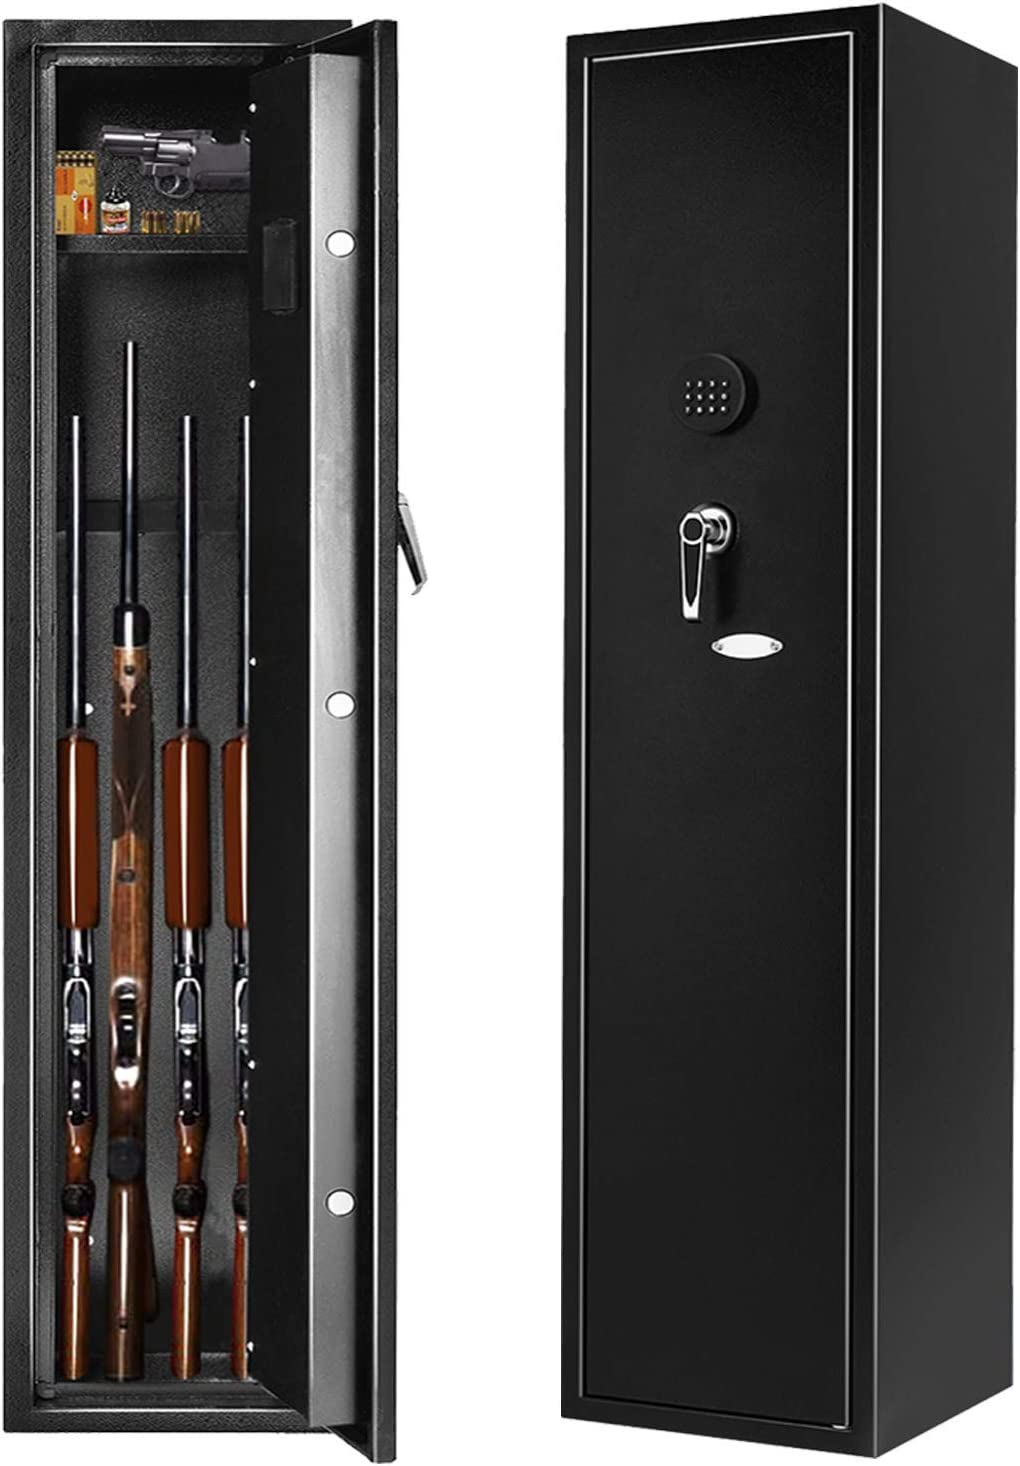 INVIE Large Rifle Safe for Home, Long Gun Safe for 4 Rifle Shotgun, Quick Access Gun Security Storage Cabinet with Removable Shelf for Handguns Ammo